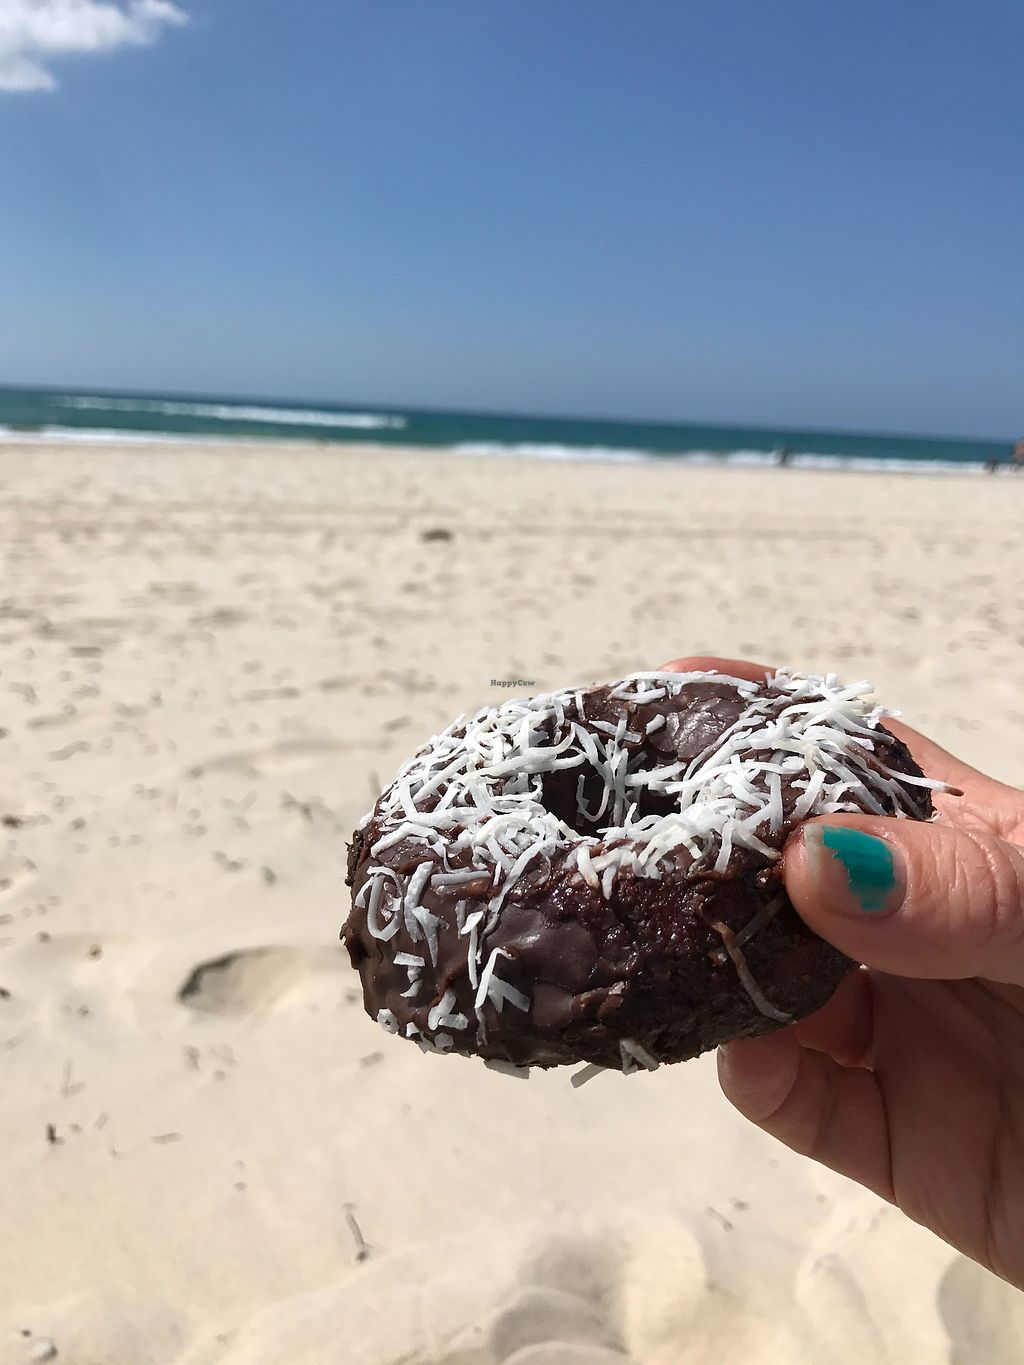 """Photo of Cakegirl Donuts  by <a href=""""/members/profile/AmandaAttard"""">AmandaAttard</a> <br/>Lamington donut from CakeGirl Donuts <br/> September 10, 2017  - <a href='/contact/abuse/image/100112/303092'>Report</a>"""